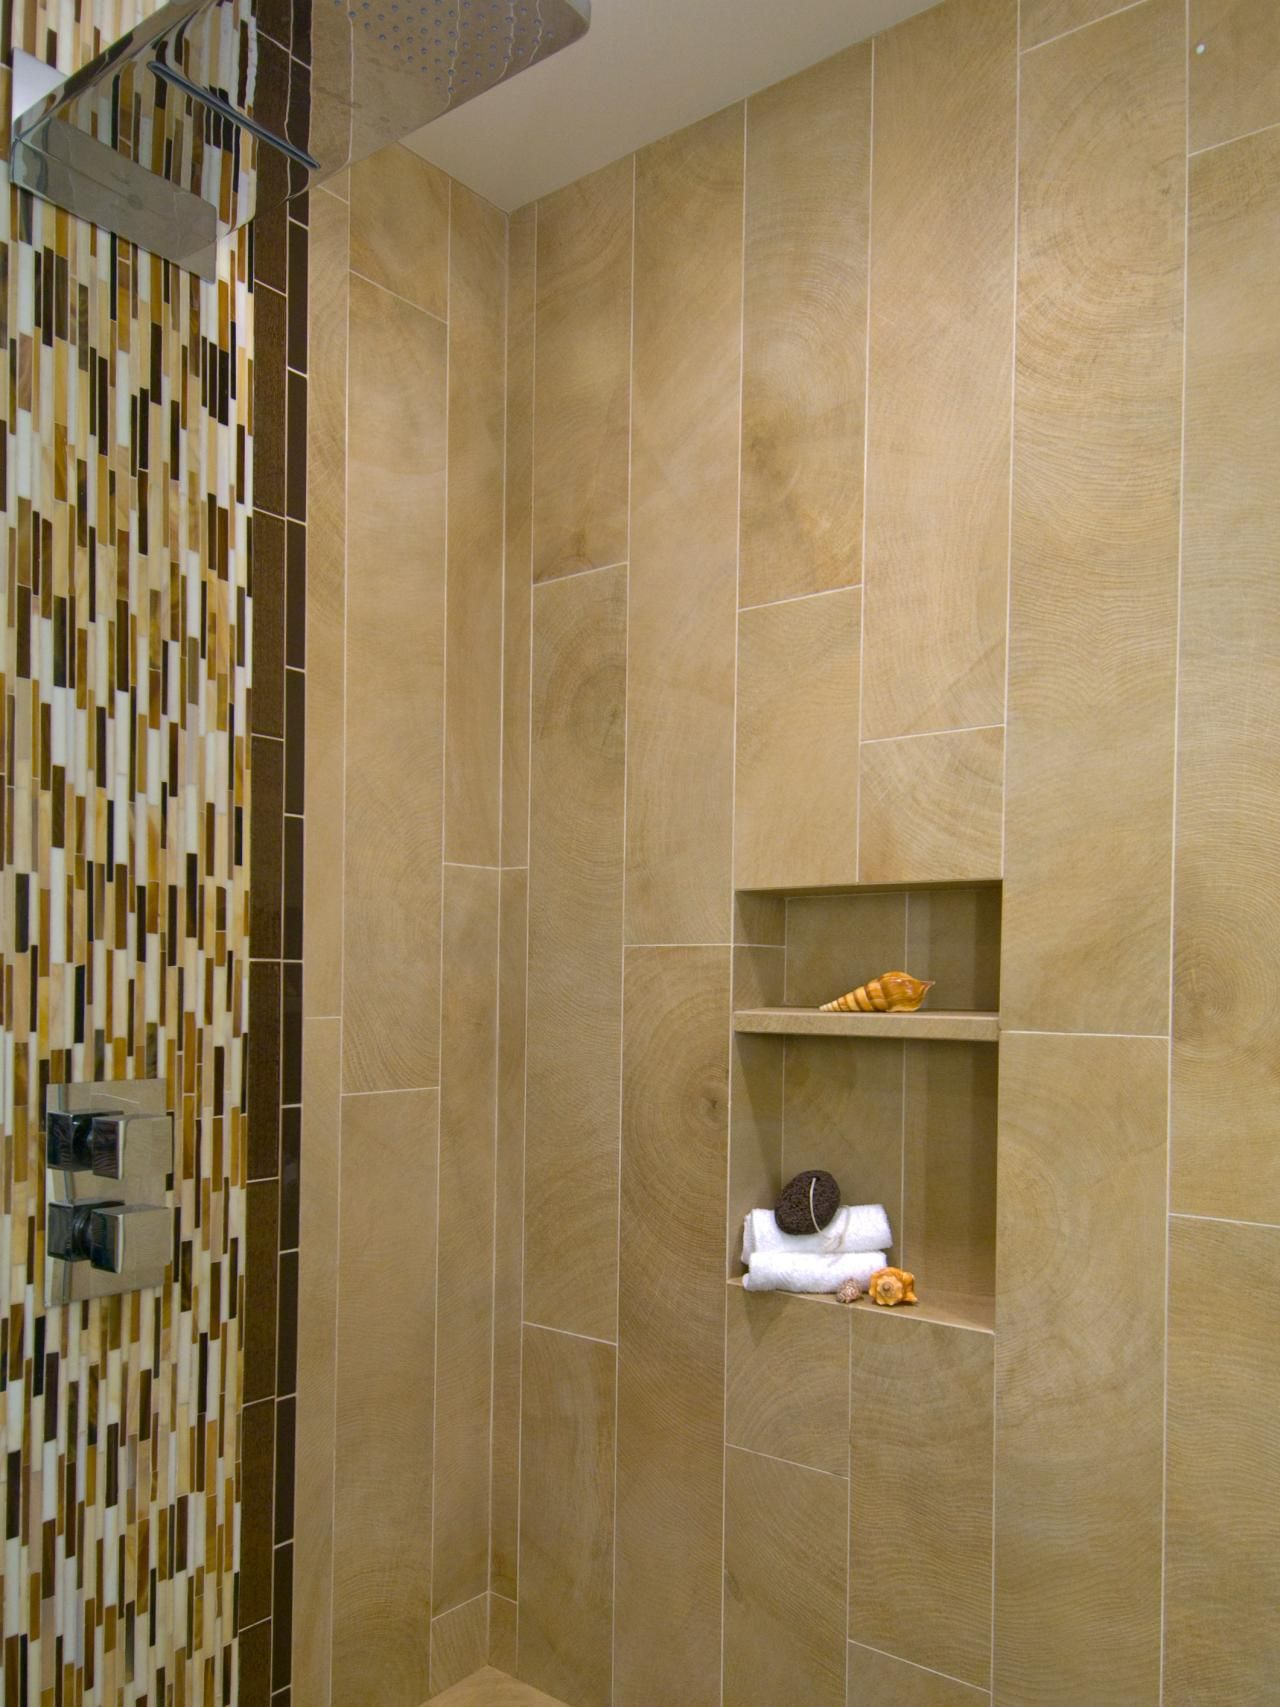 Image result for bathroom shower vertical tiles